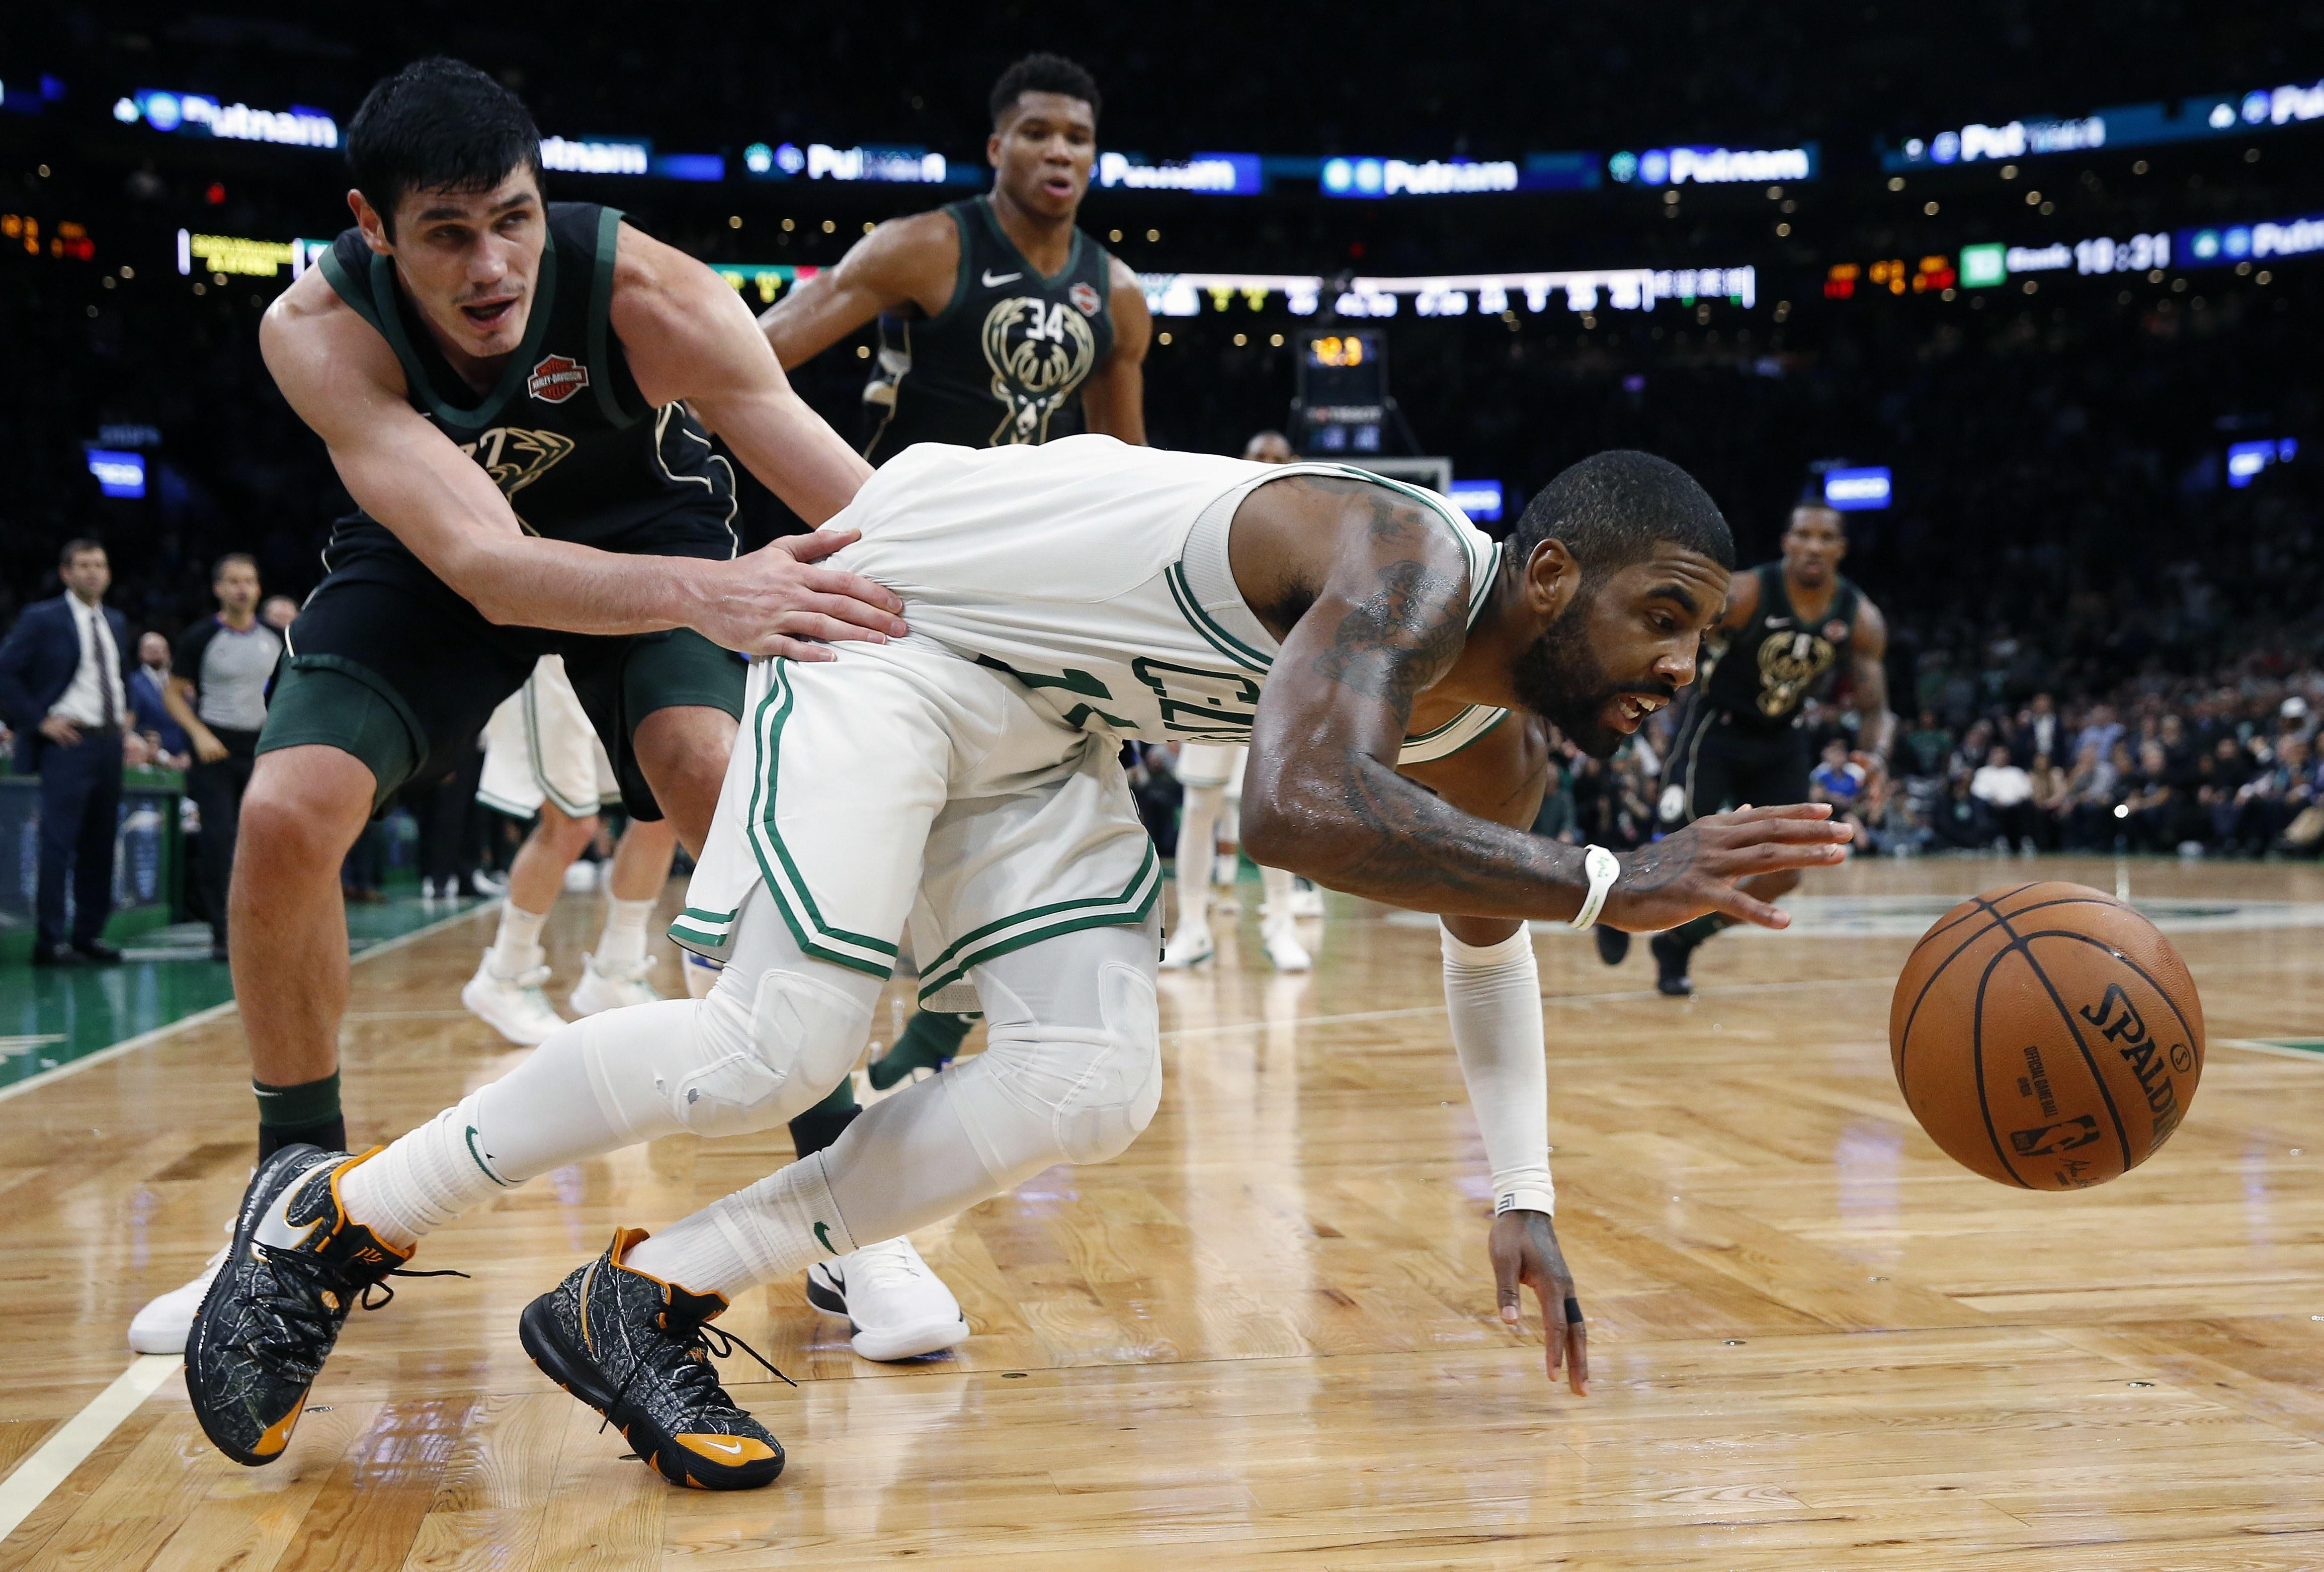 44cd536571cc Boston s Kyrie Irving drives past Milwaukee s Ersan Ilyasova during  second-half action on Thursday in